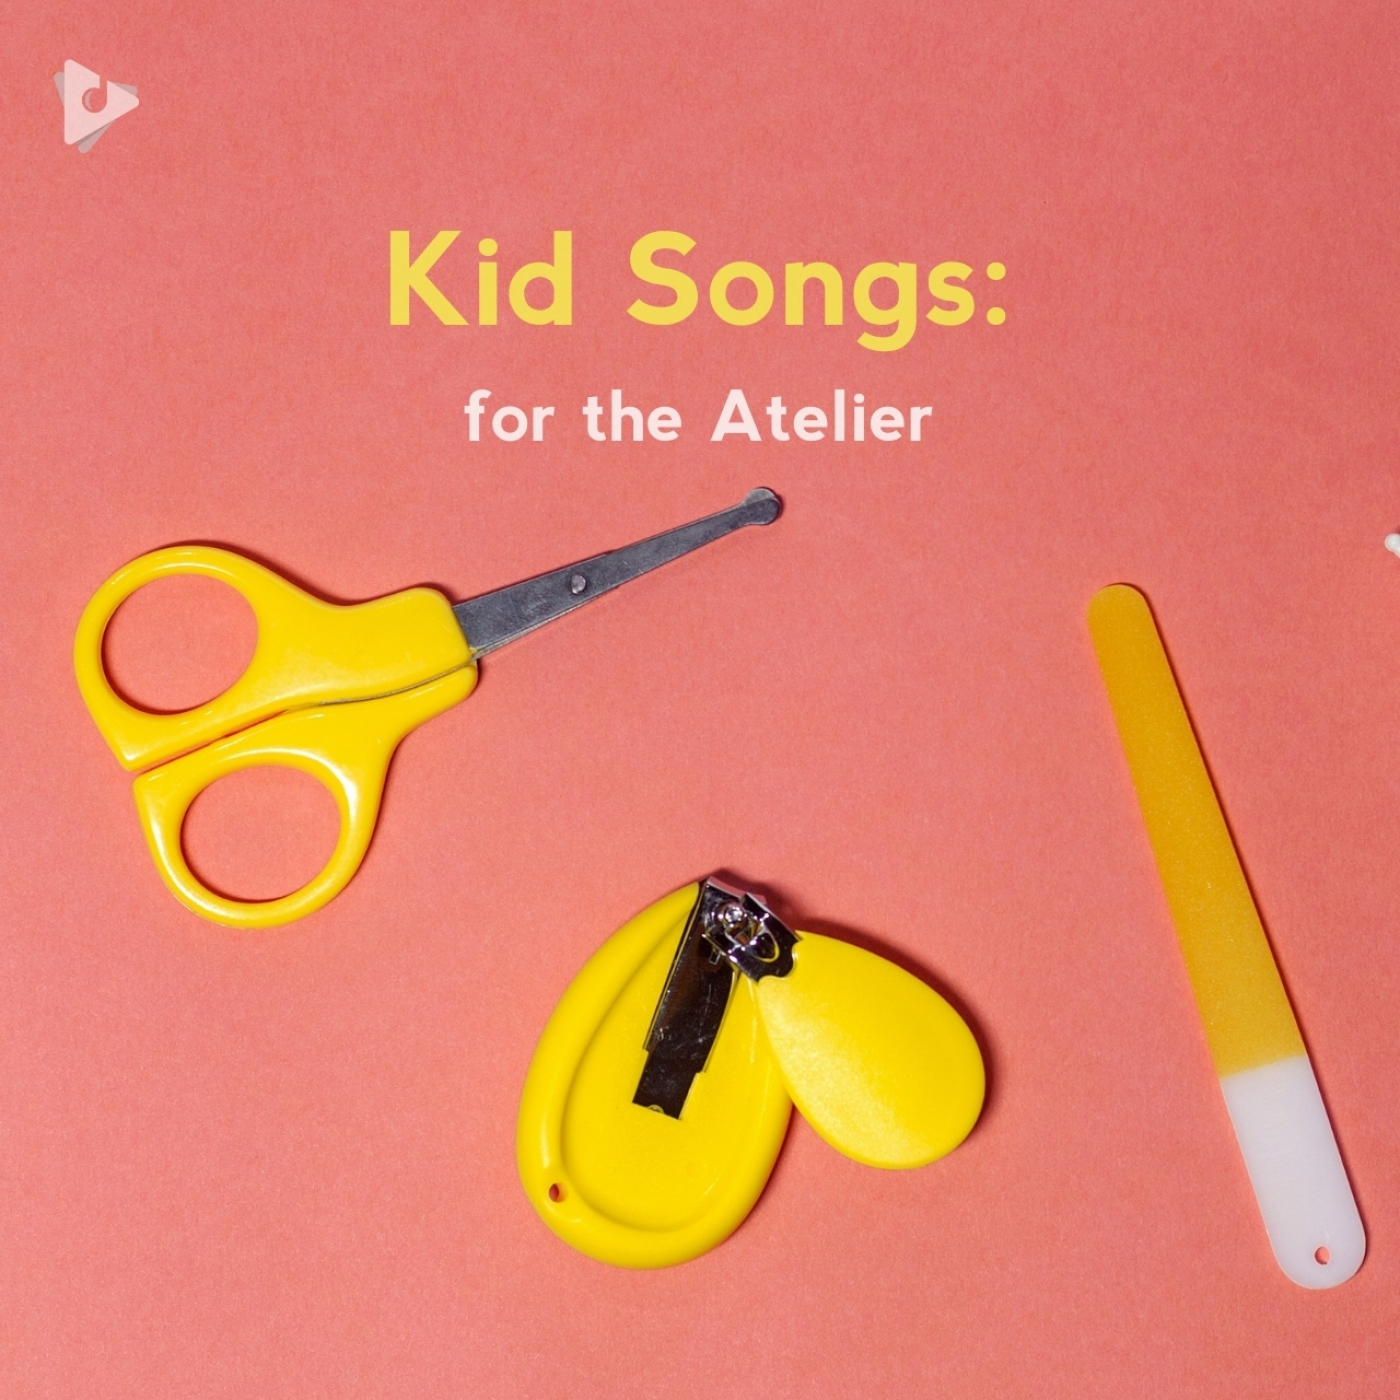 Kid Songs: for the Atelier